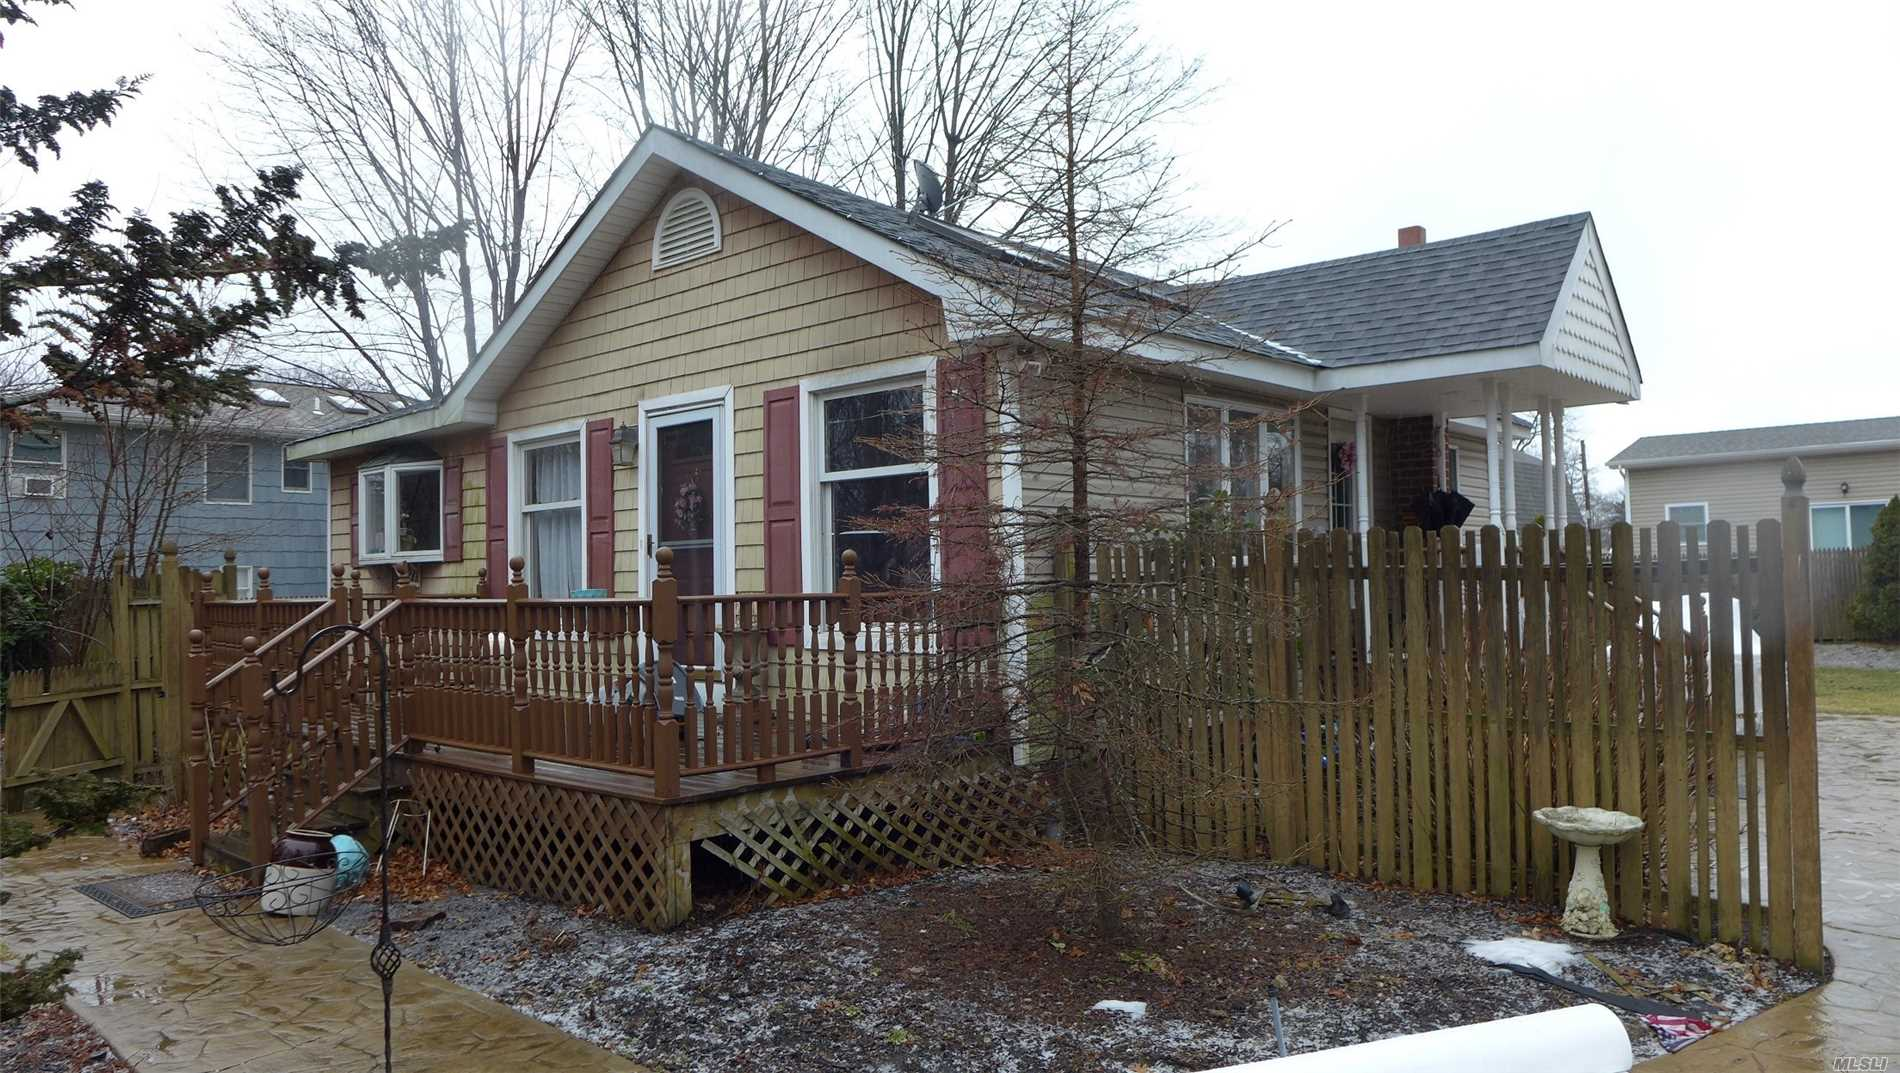 Great 2/3 Bedroom Starter Home On A Private Dead End Street. Vaulted Ceilings, Eik, Full Finished Above Grade Basement W Potential Income W Proper Permits.  Nice Backyard With Stamped Concrete Walkways And A Large Paver Driveway.